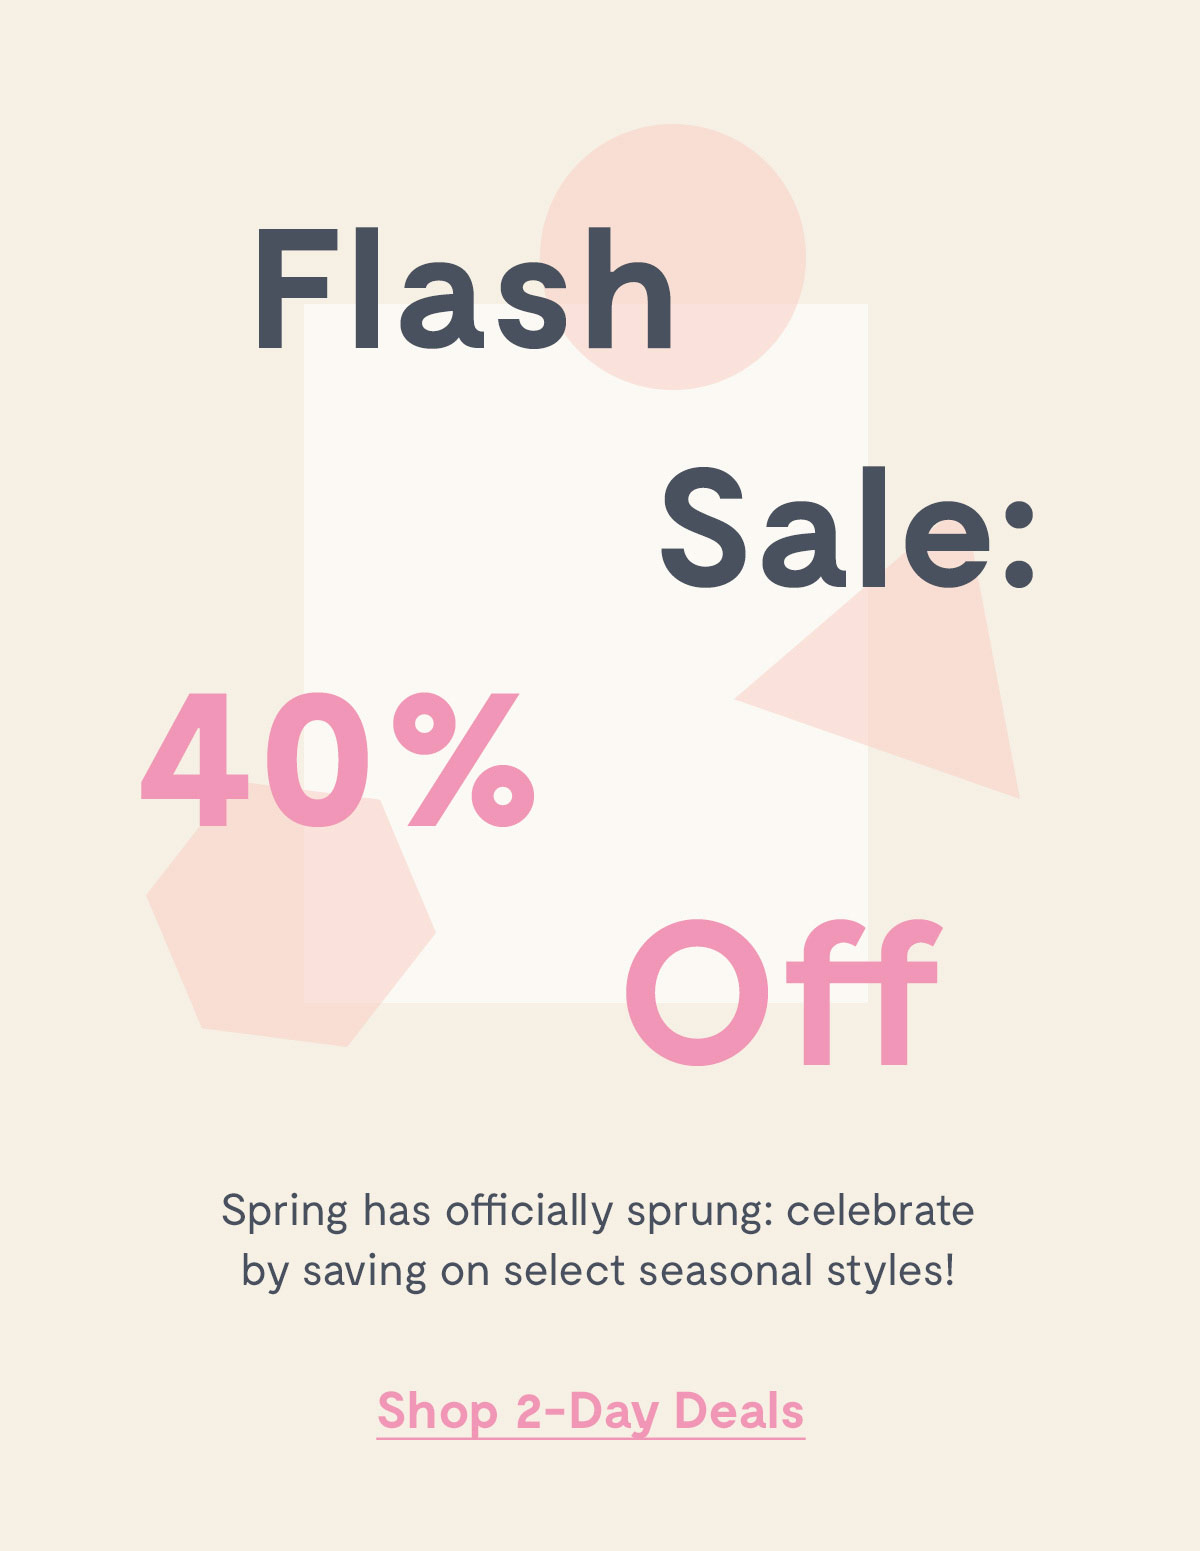 Flash Sale: 40% Off         Spring has officially sprung: celebrate by saving on select seasonal styles!         Shop 2-Day Deals >>